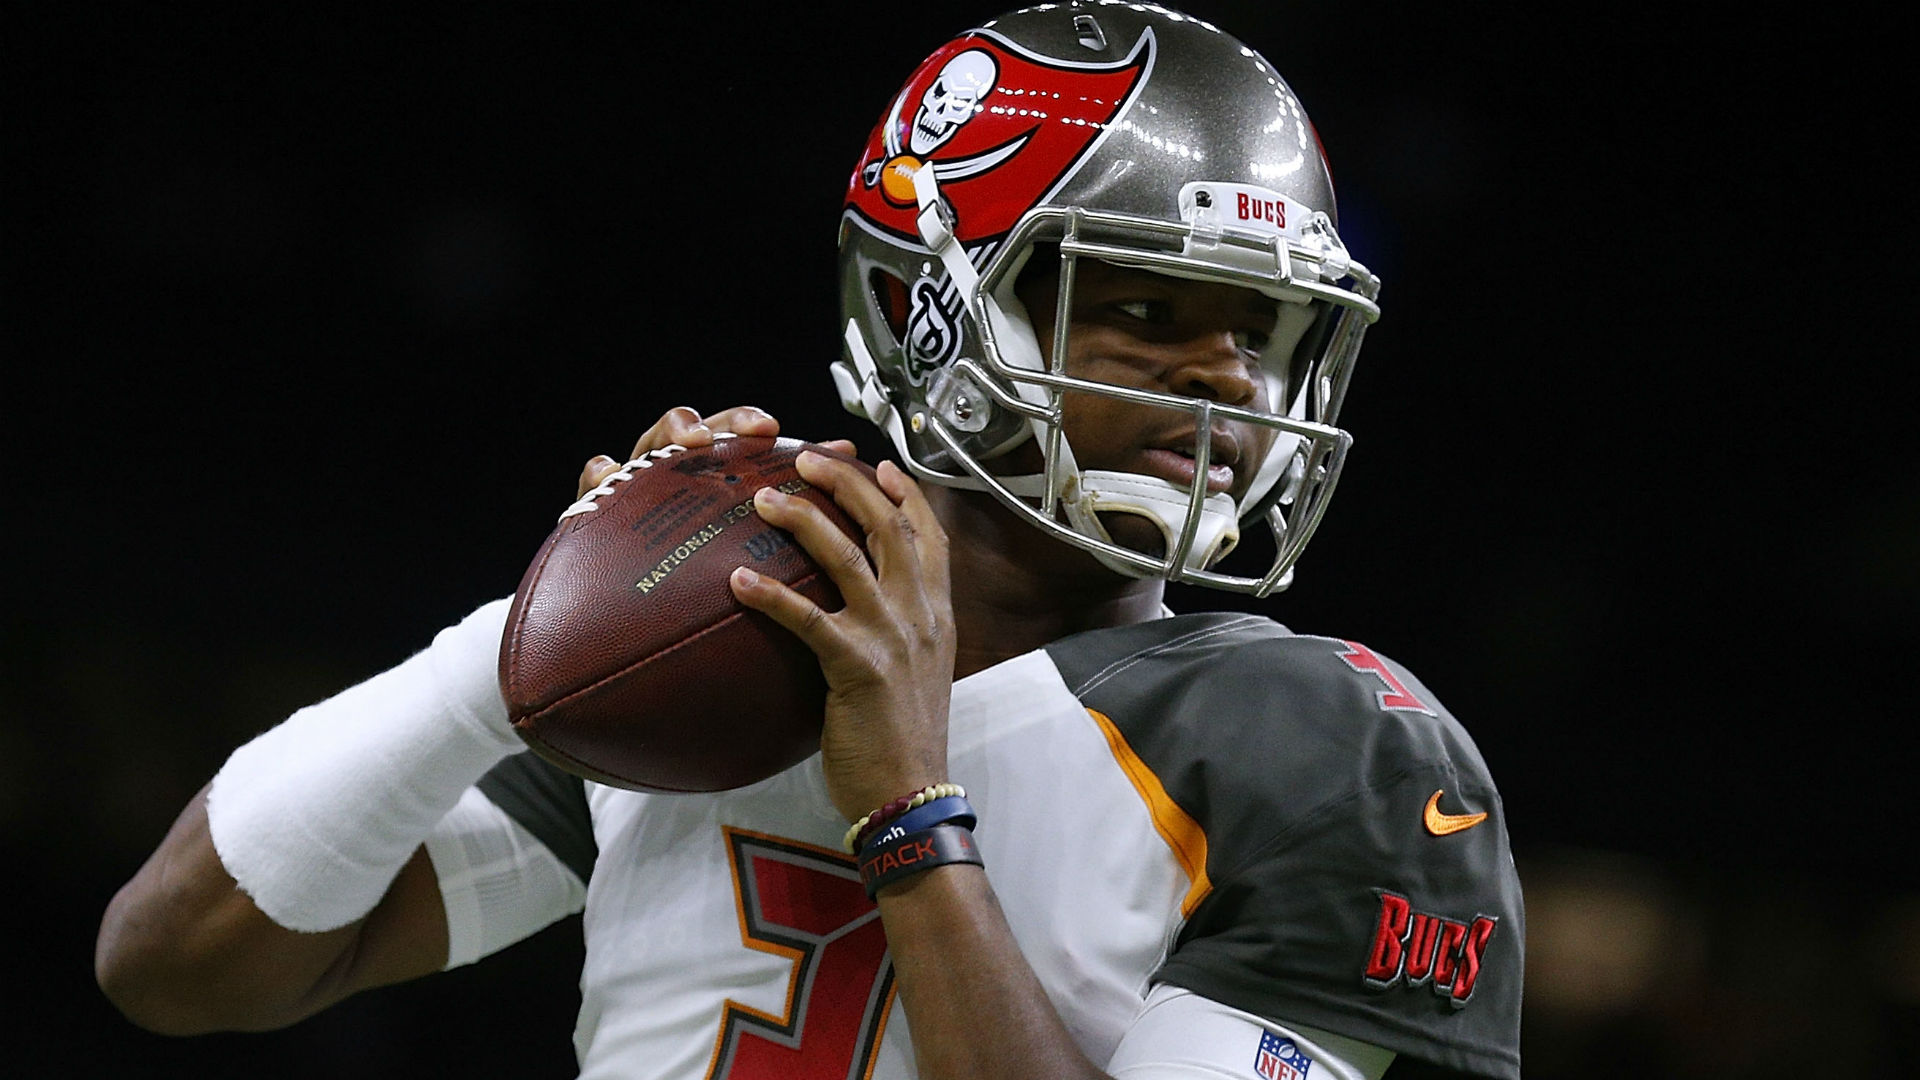 Jameis Winston pumps up Buccaneers with one of the weirdest pregame speeches